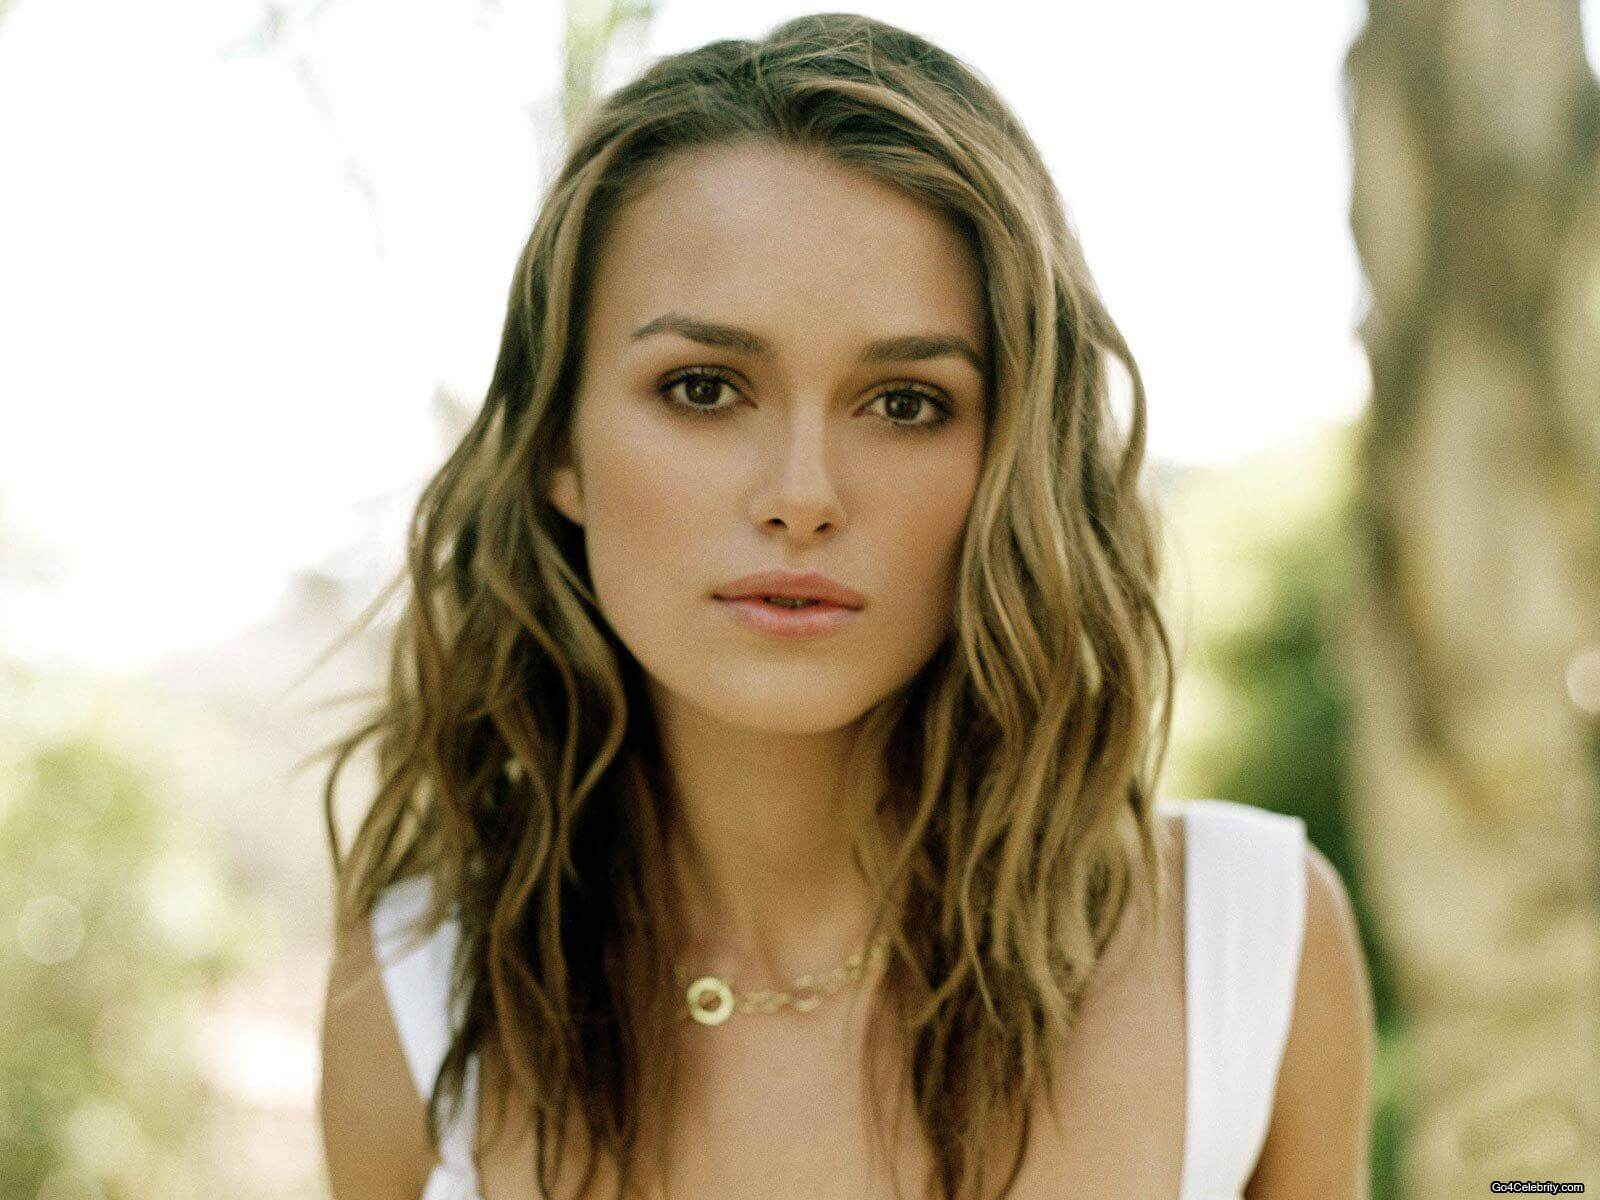 pictures Keira Knightley (born 1985)